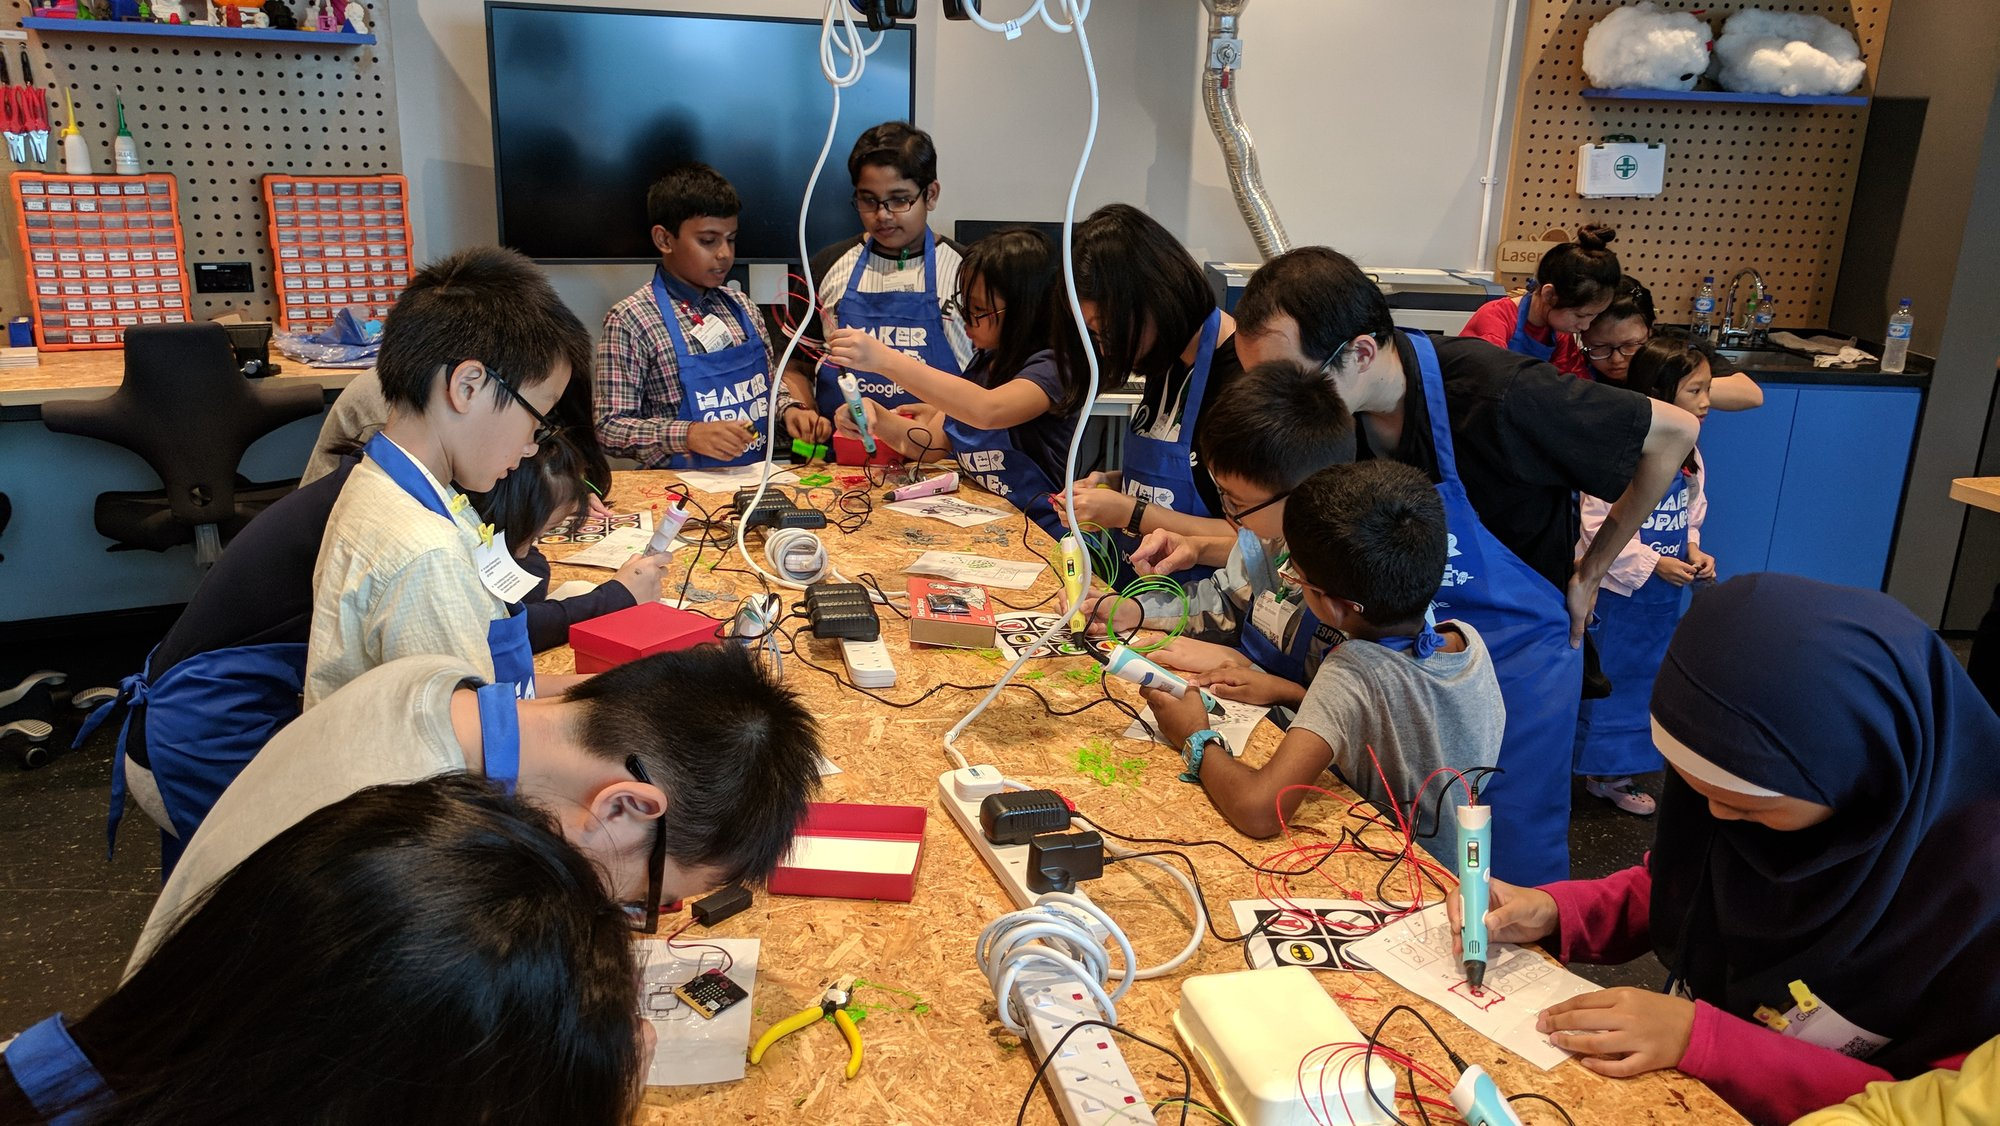 Code in the Community in the Maker Space